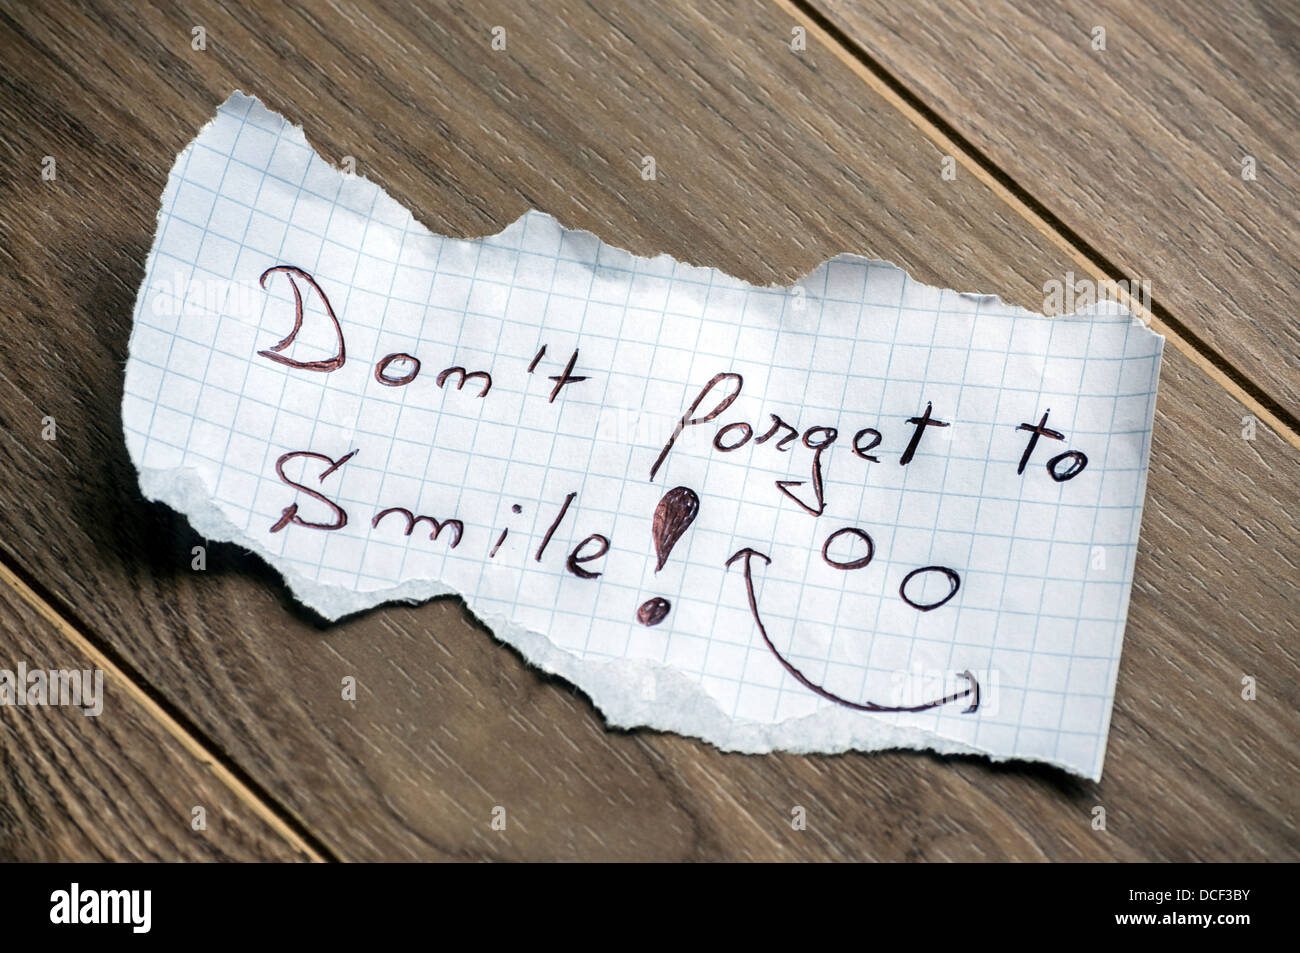 Don't forget to Smile - Hand writing text on a piece of paper on wood background - Stock Image